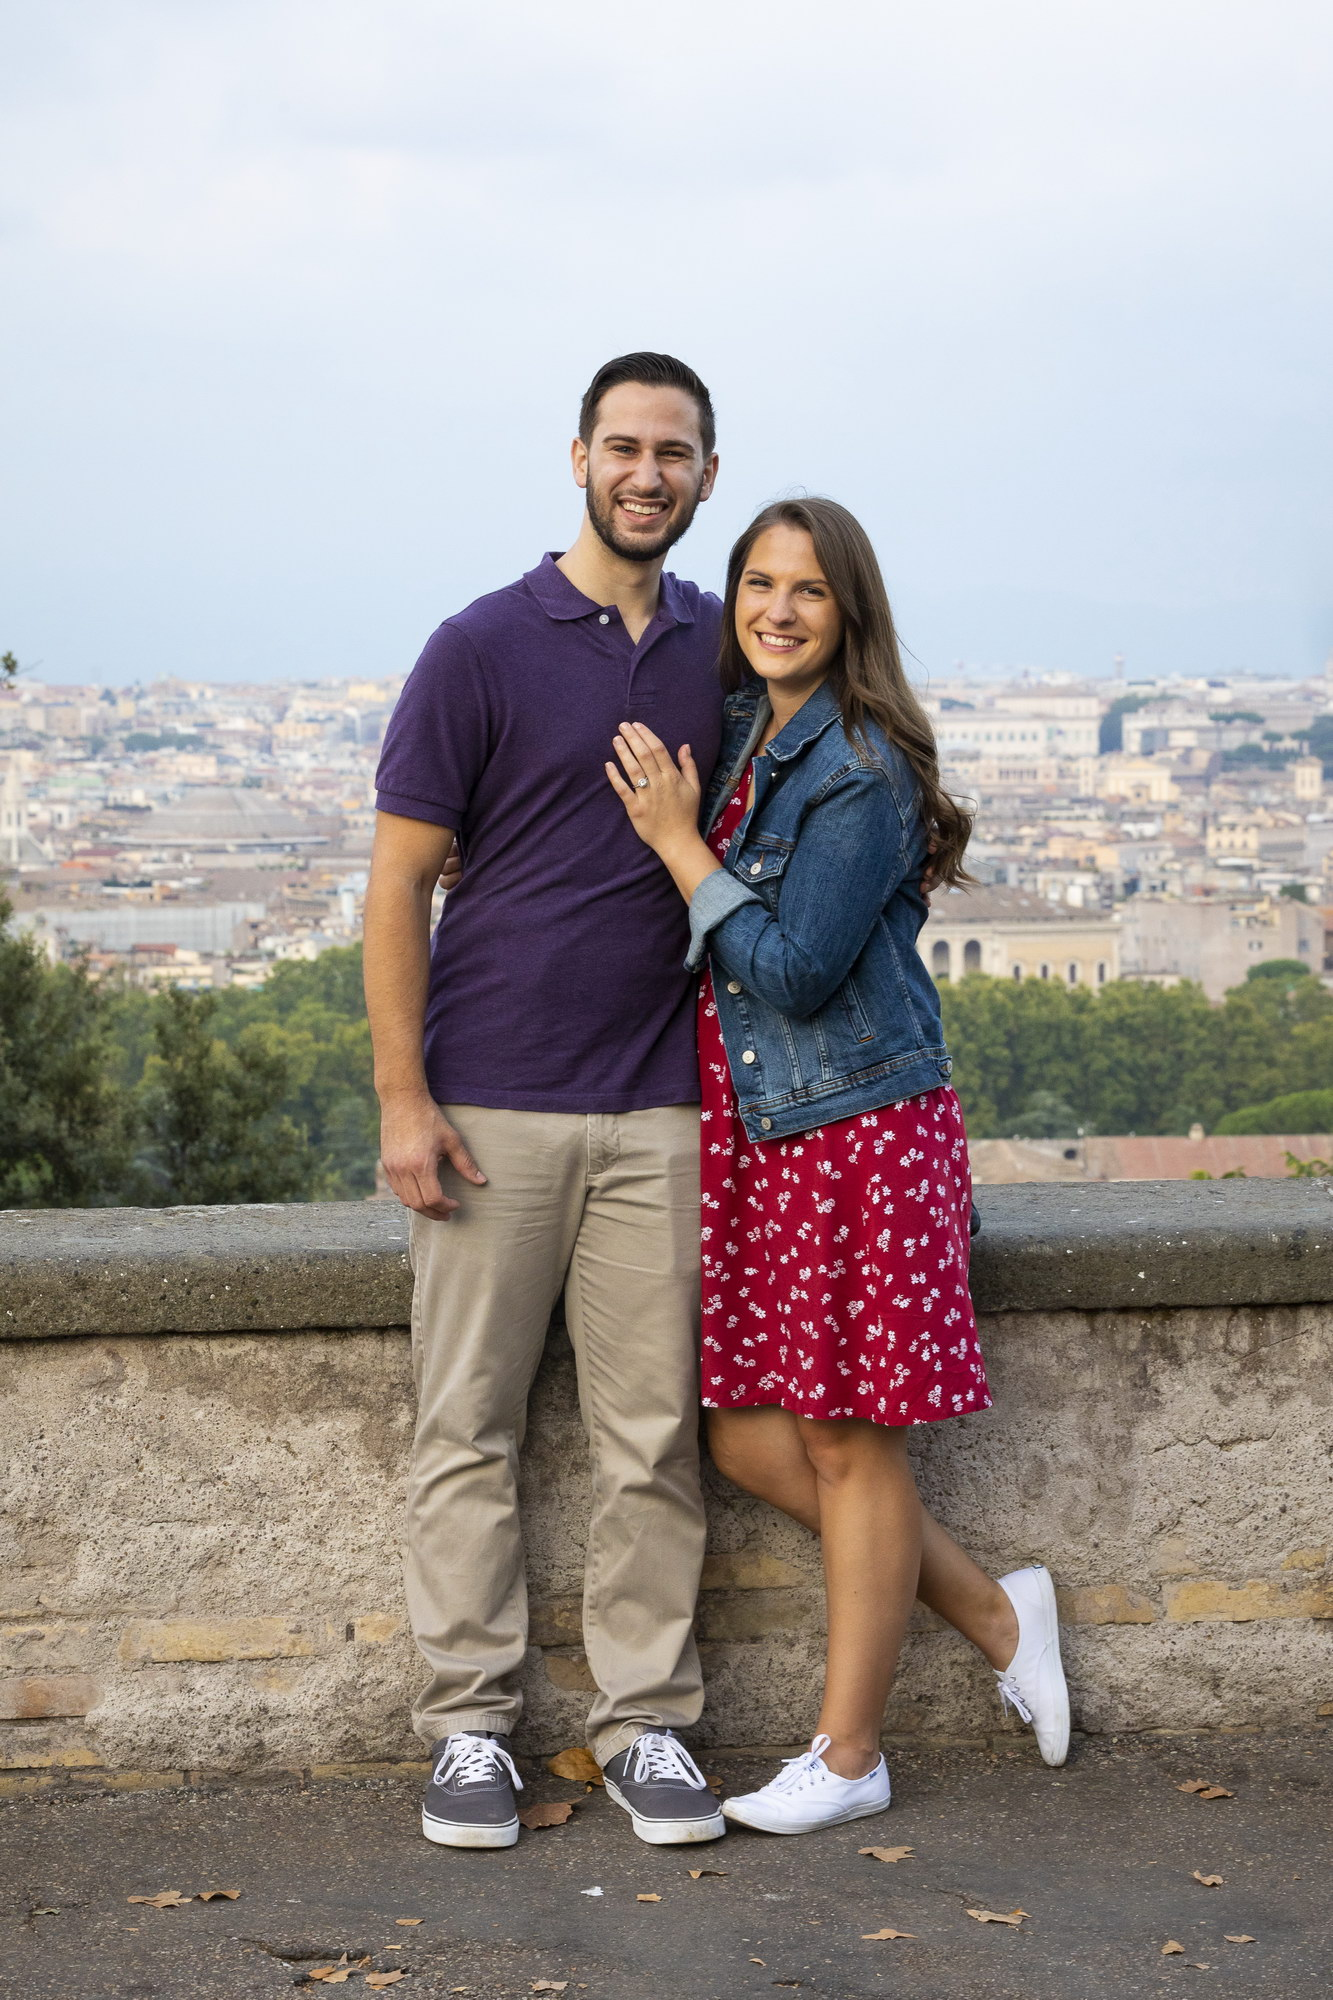 Roman Wedding Proposal With a View Andrea Matone05